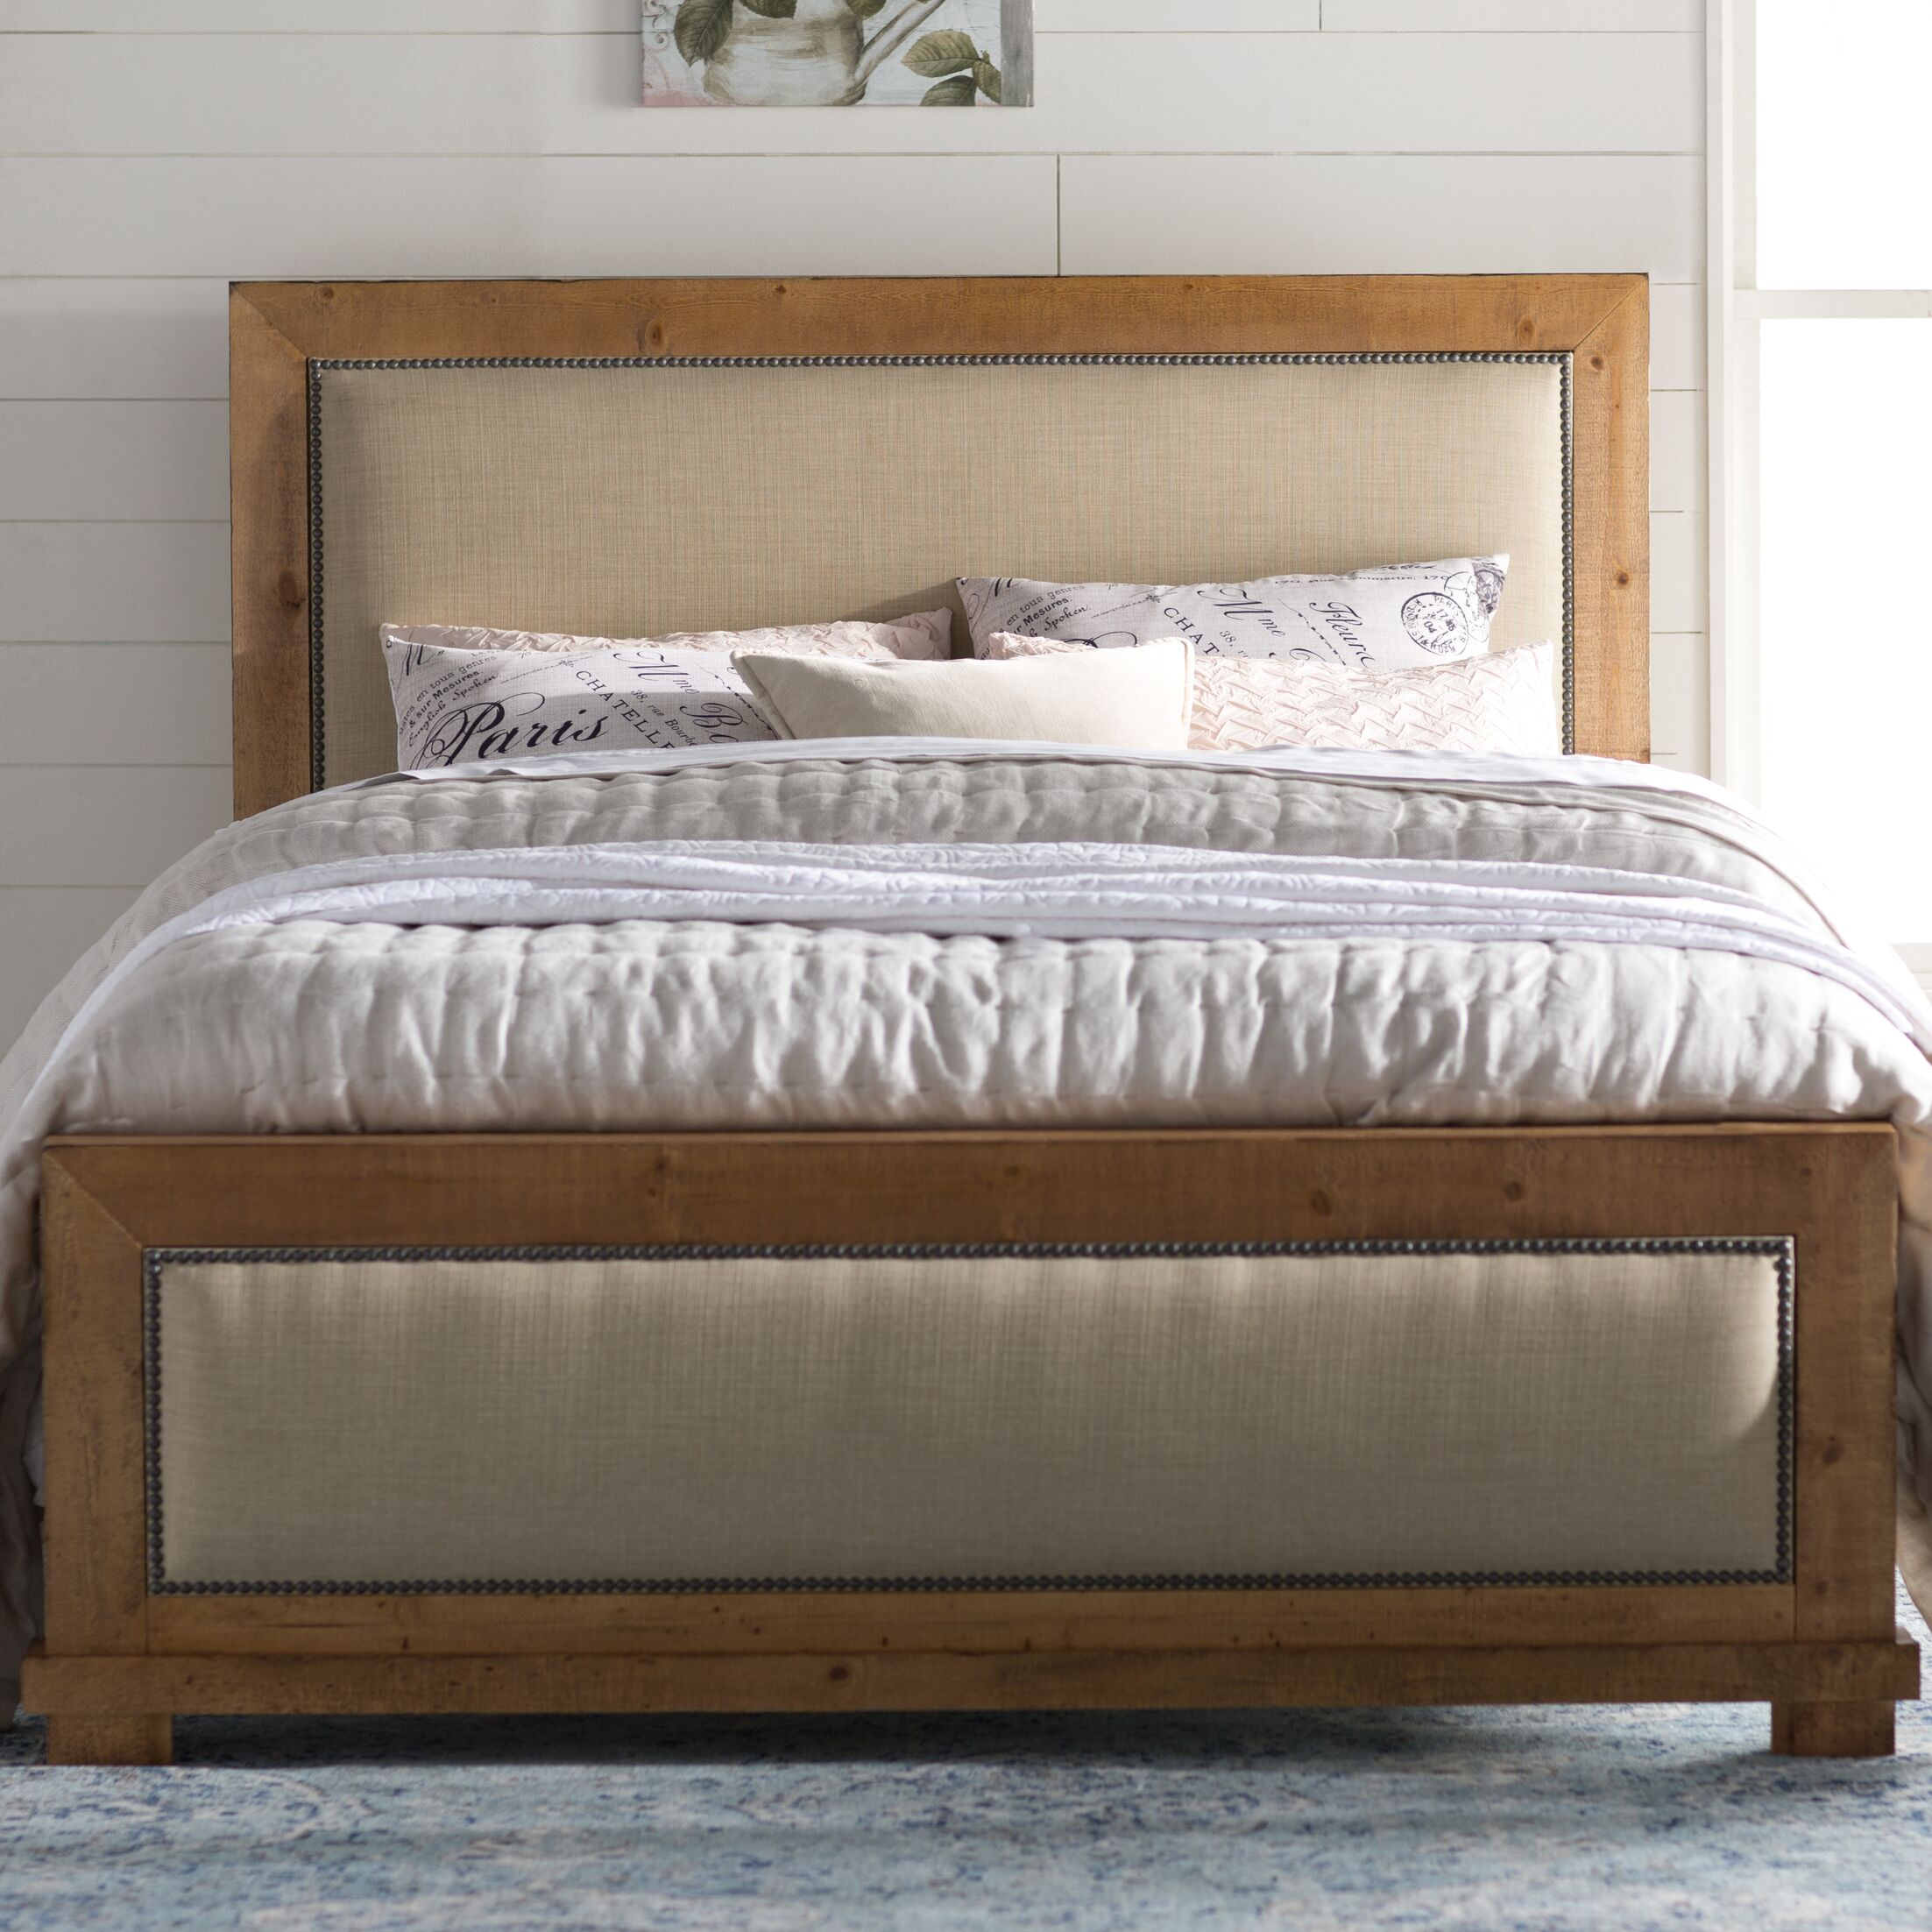 Midwest Upholstered Panel Bed Size: Queen, Color: Distressed Pine